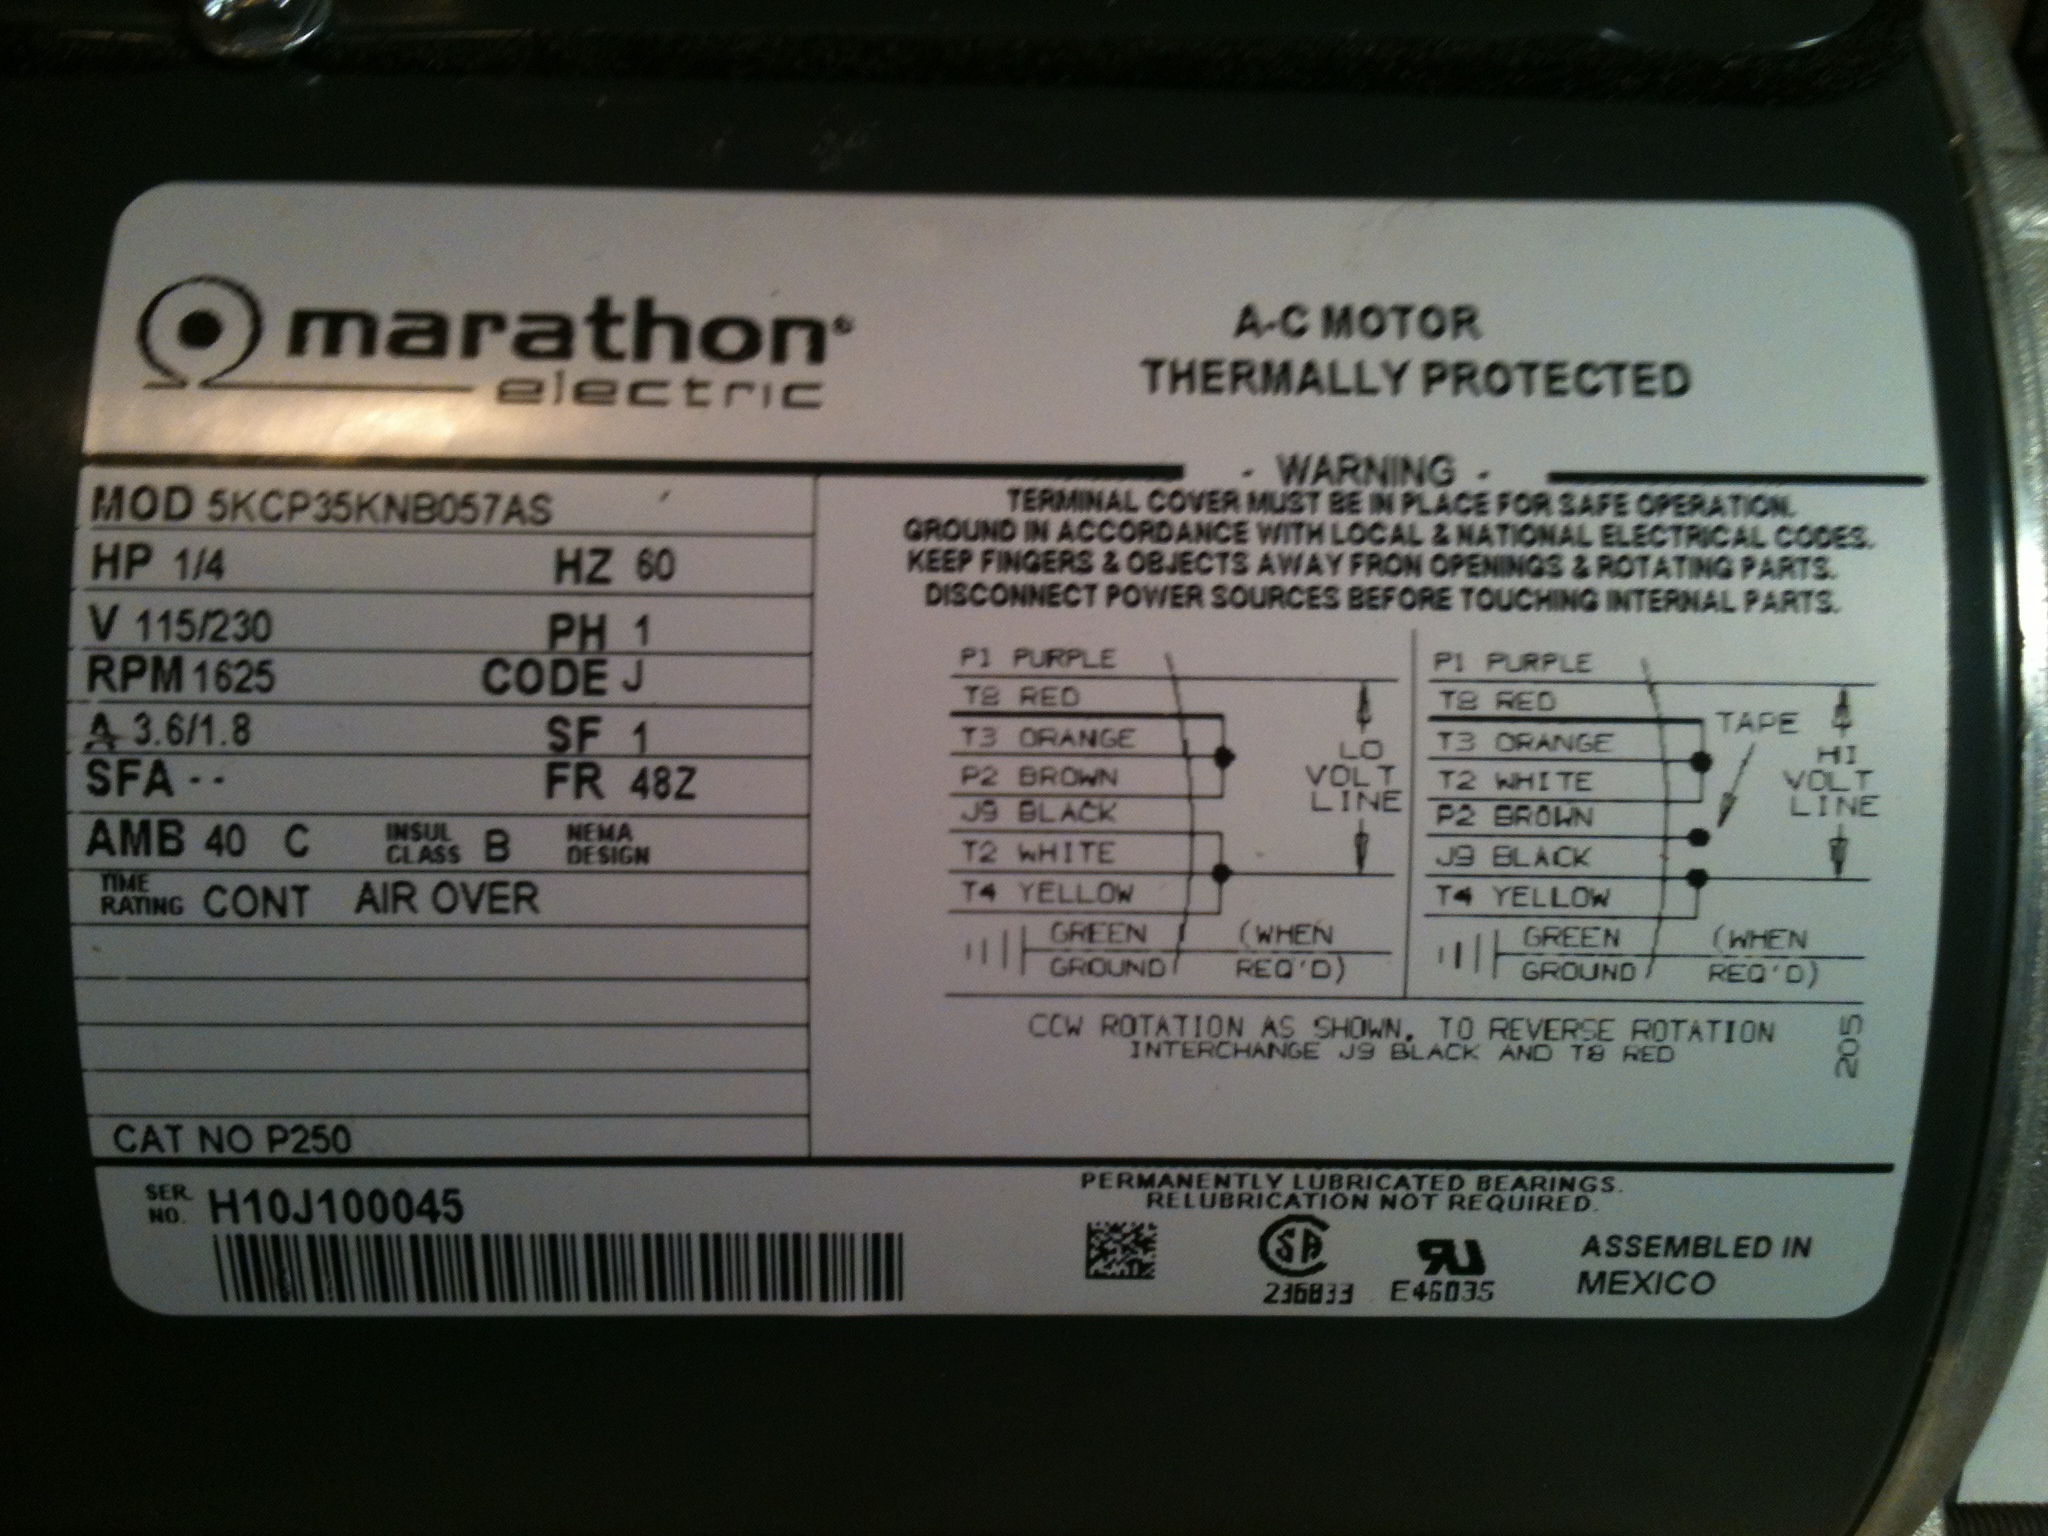 2012 01 24_021217_marathonmotor i just bought a marathon electric ac motor, hp 1 4 v 115 230 marathon electric motor wiring diagram at creativeand.co